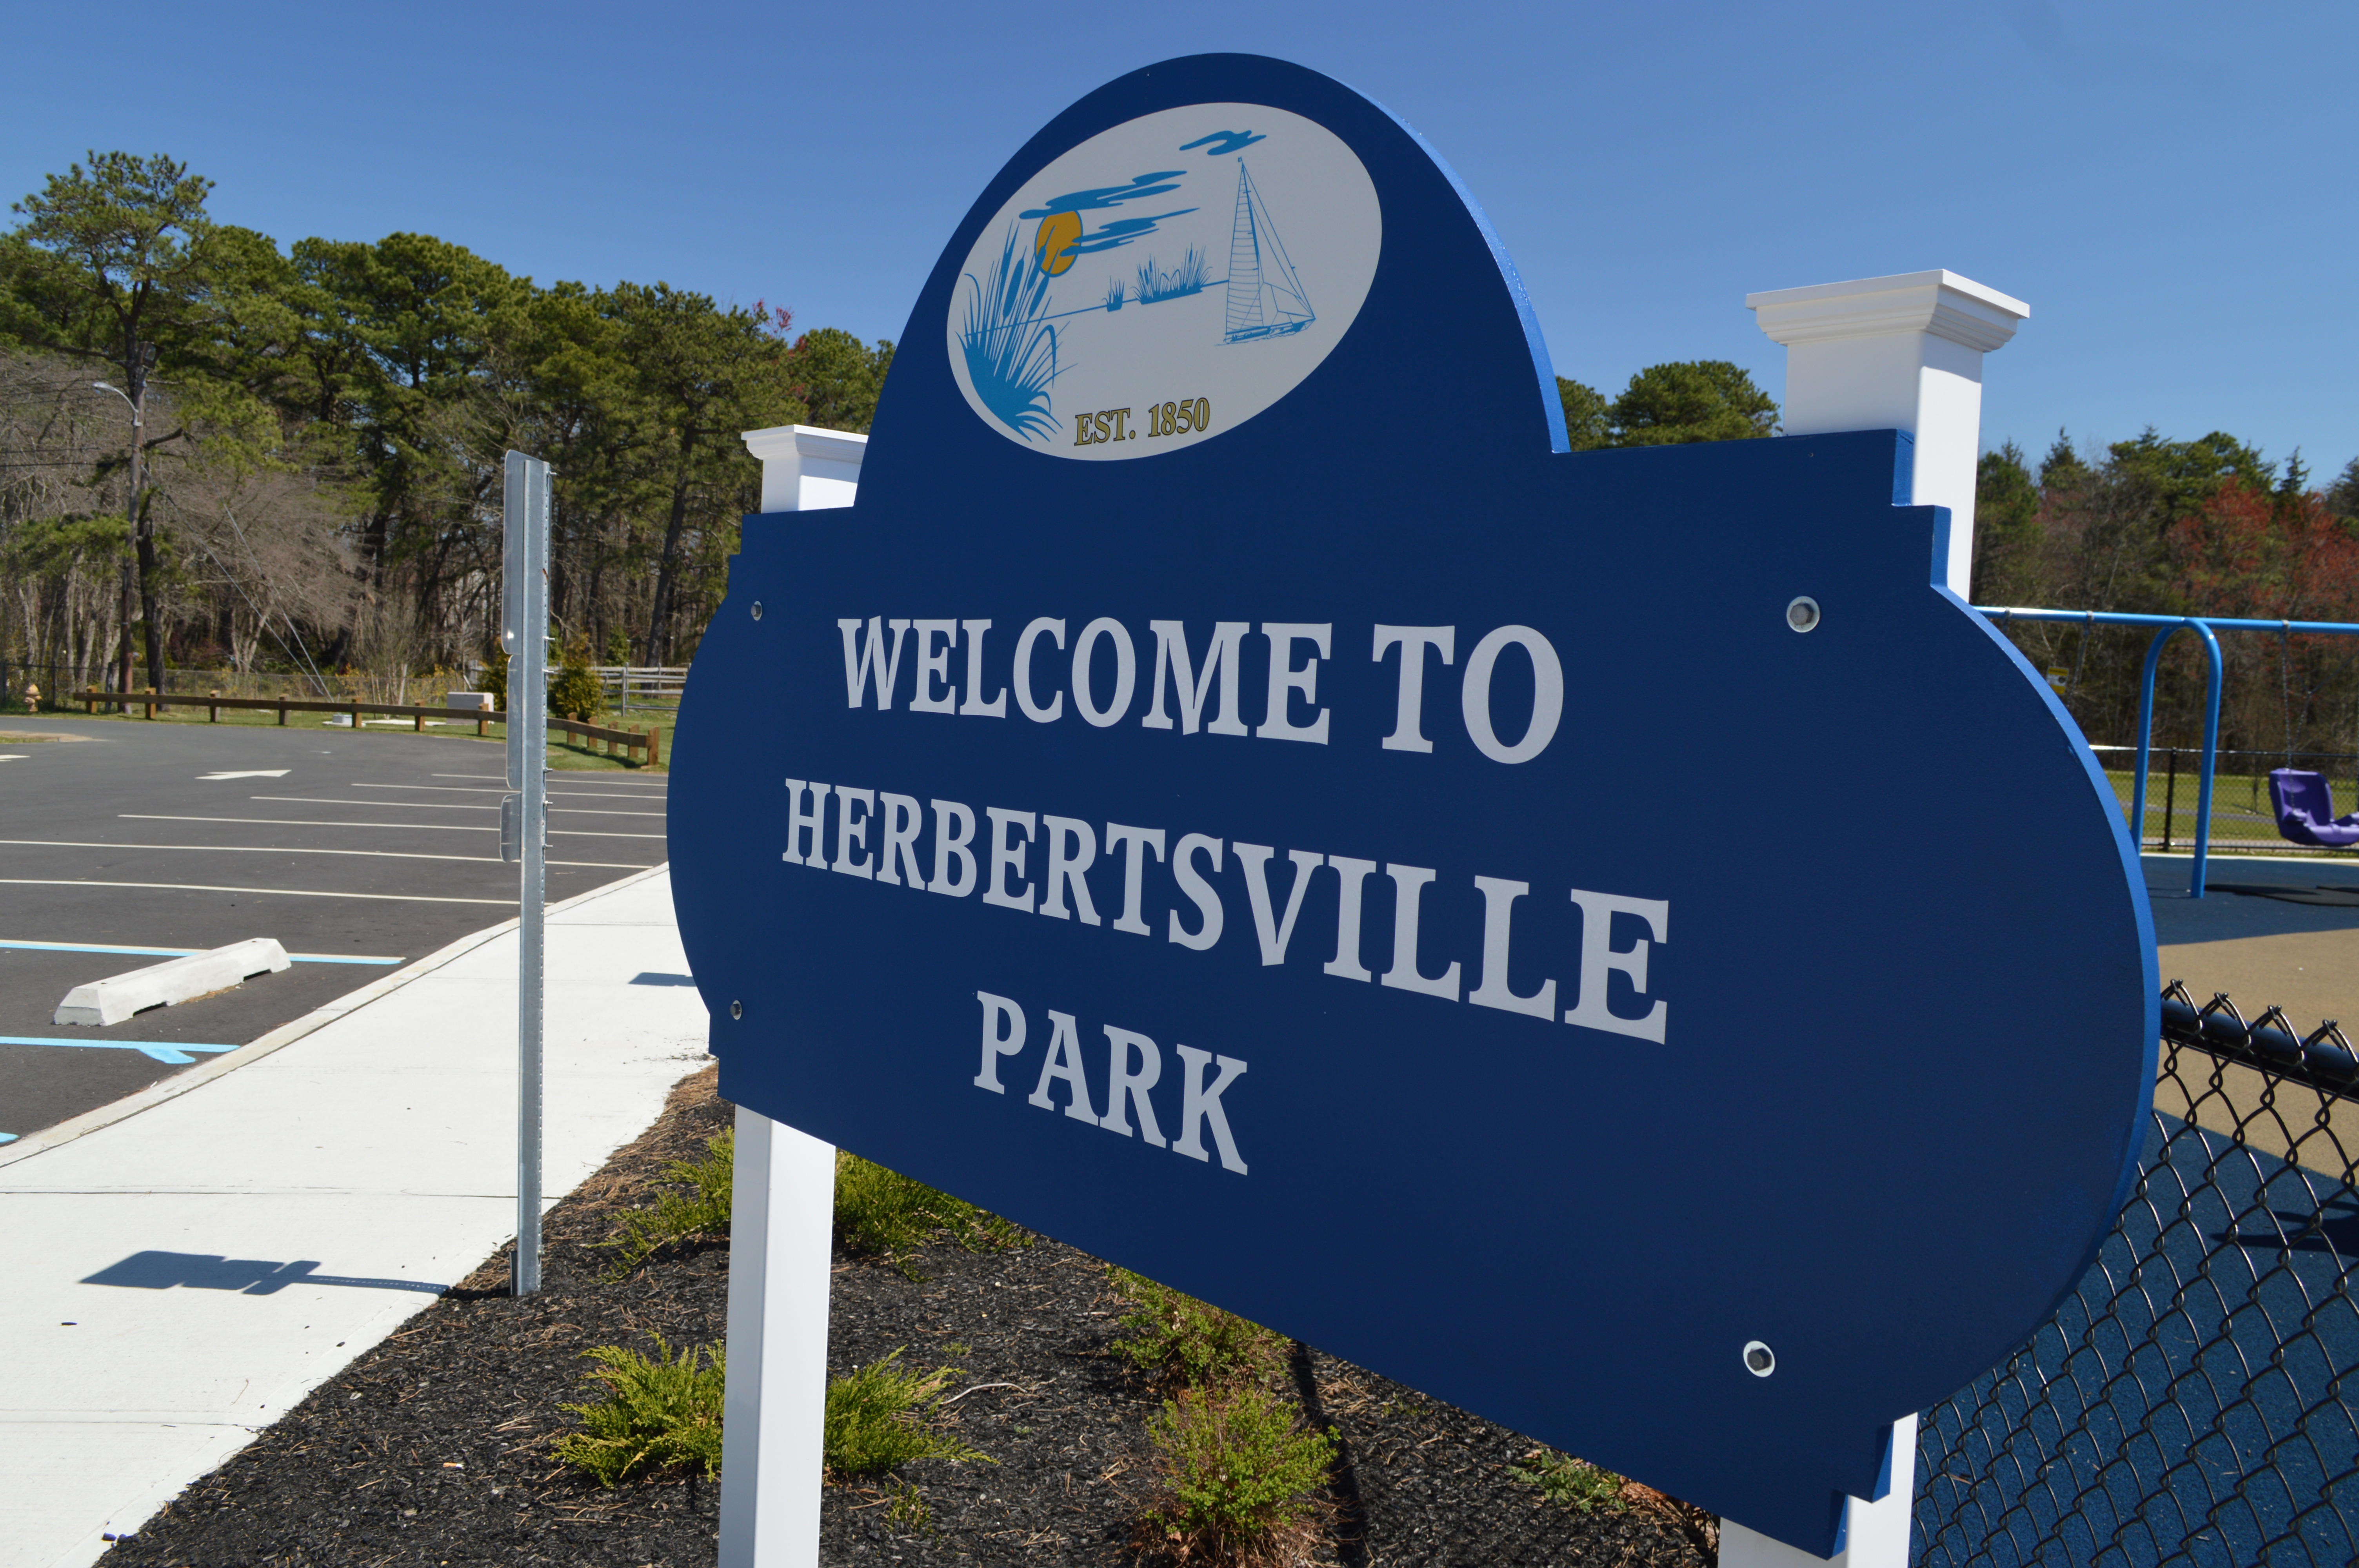 Herbertsville Park (Photo: Daniel Nee)